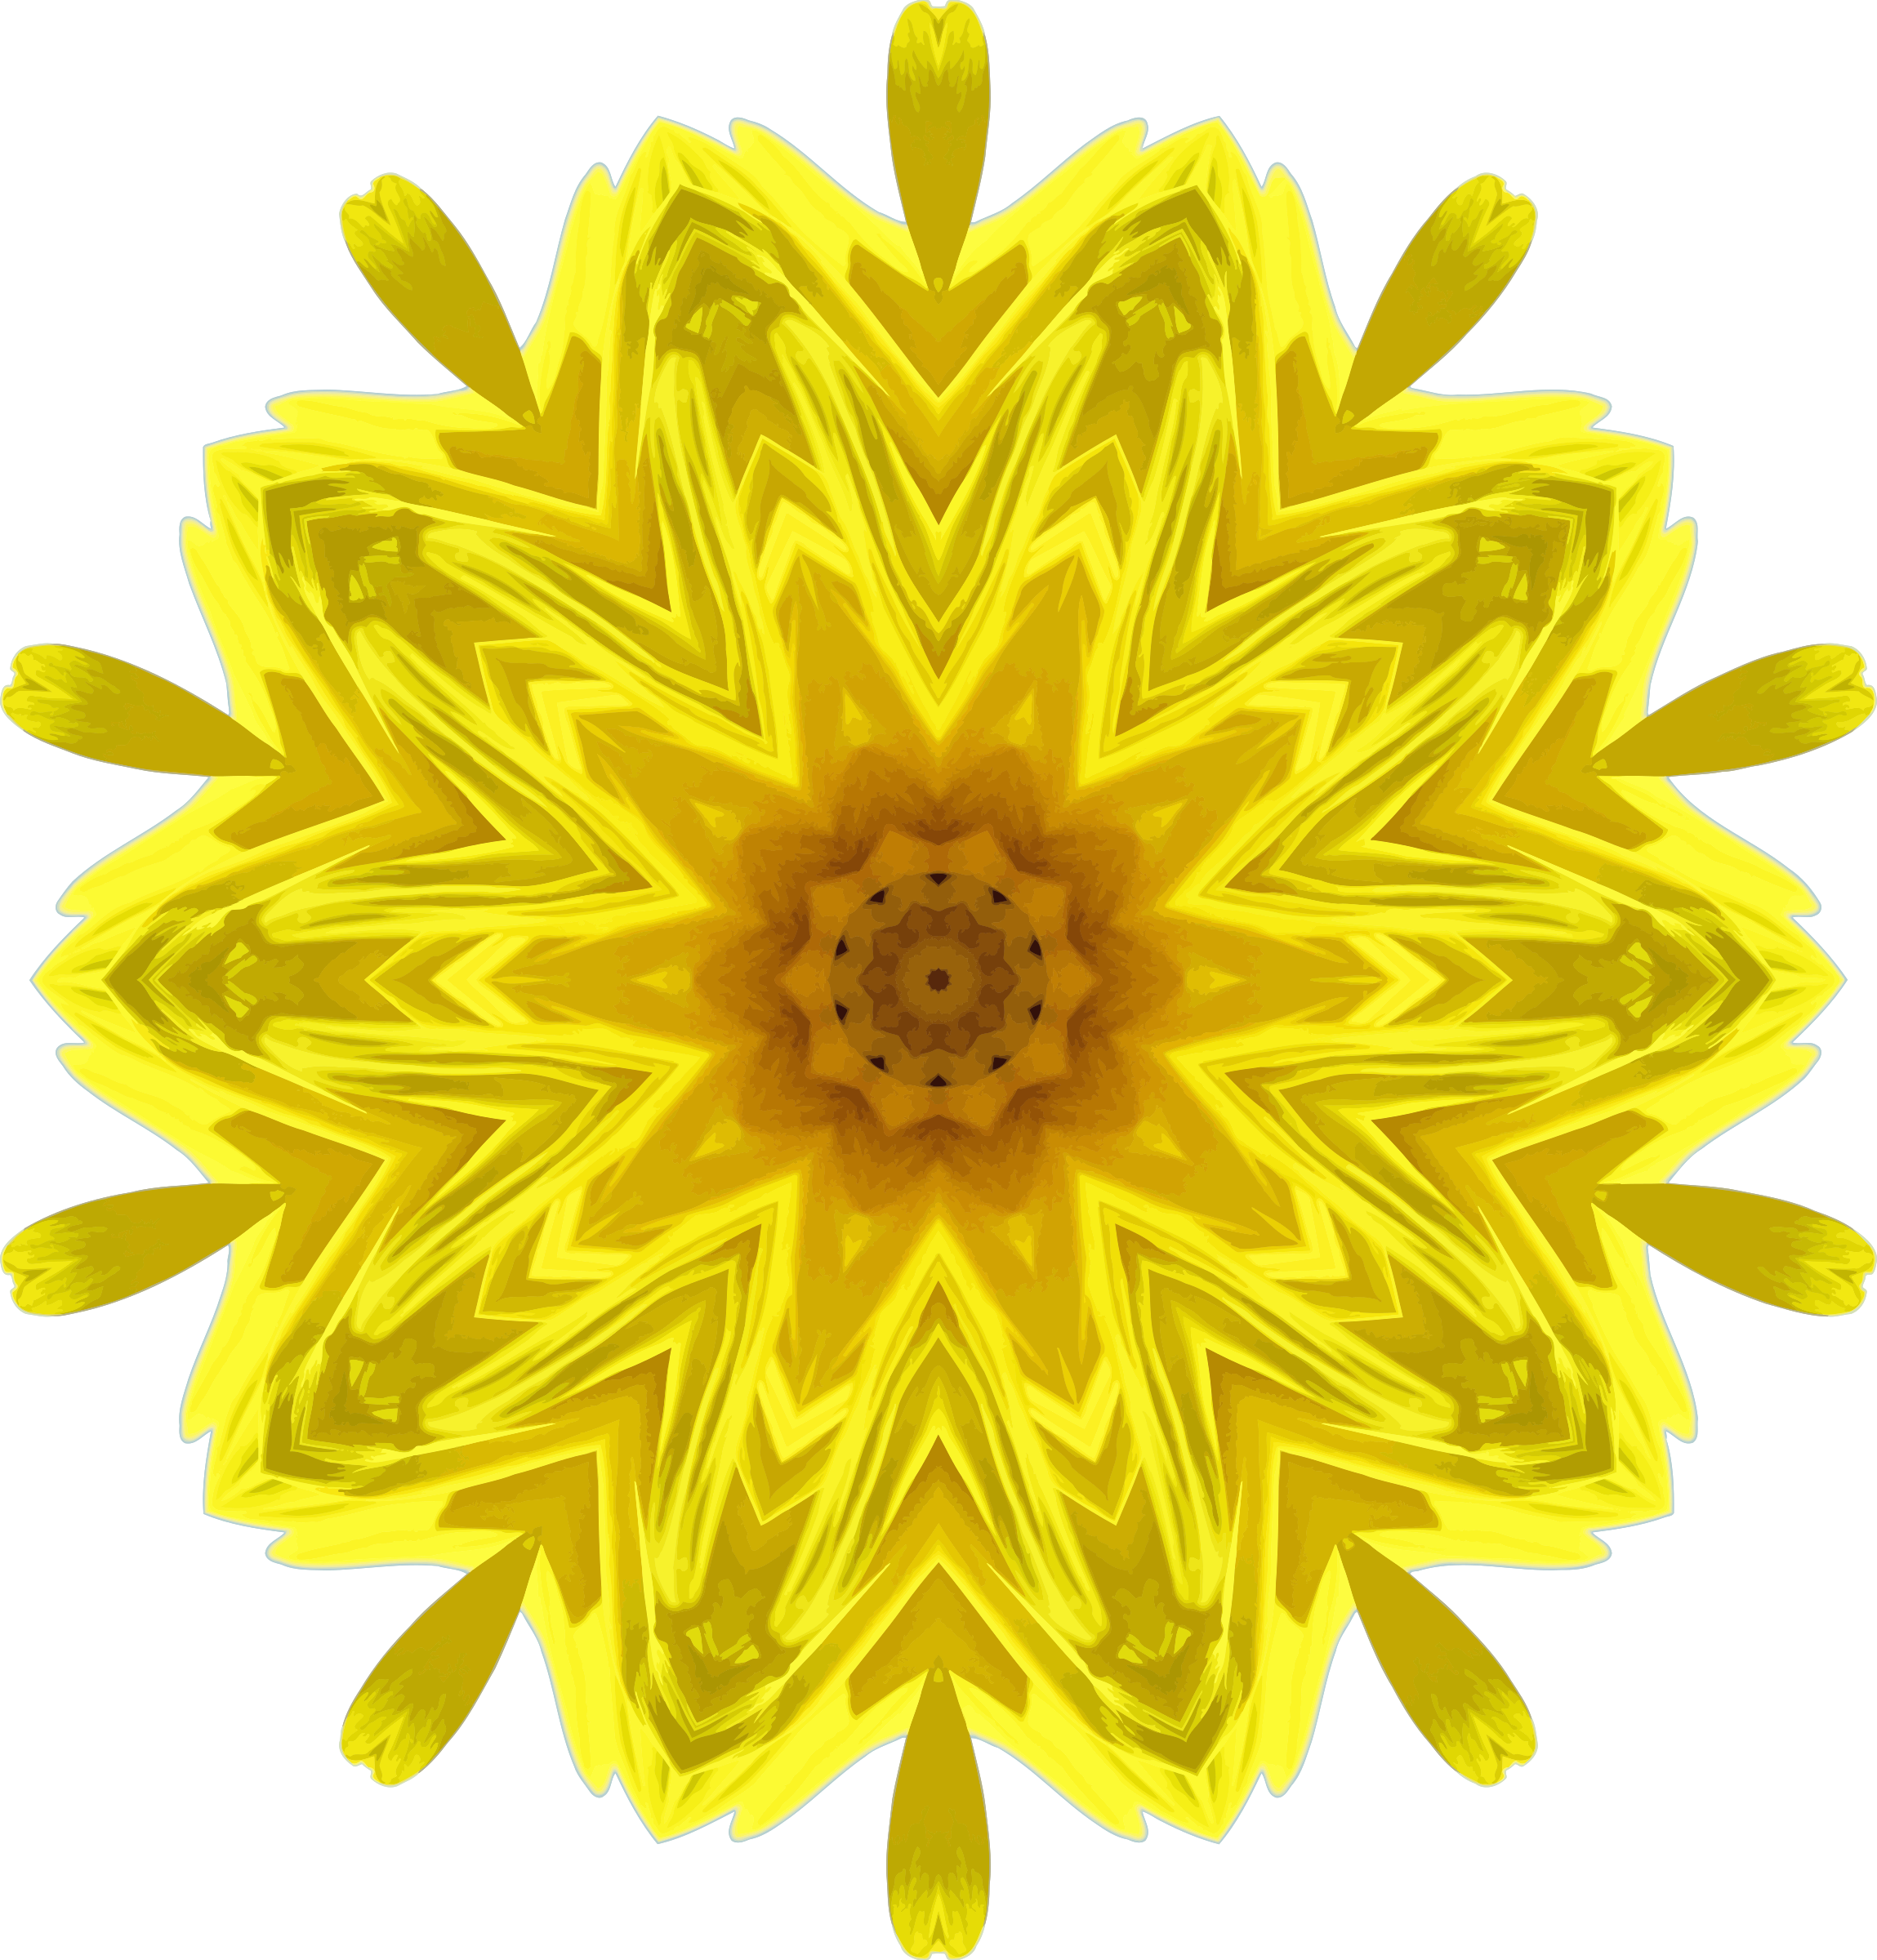 Sunflower kaleidoscope 2 by Firkin